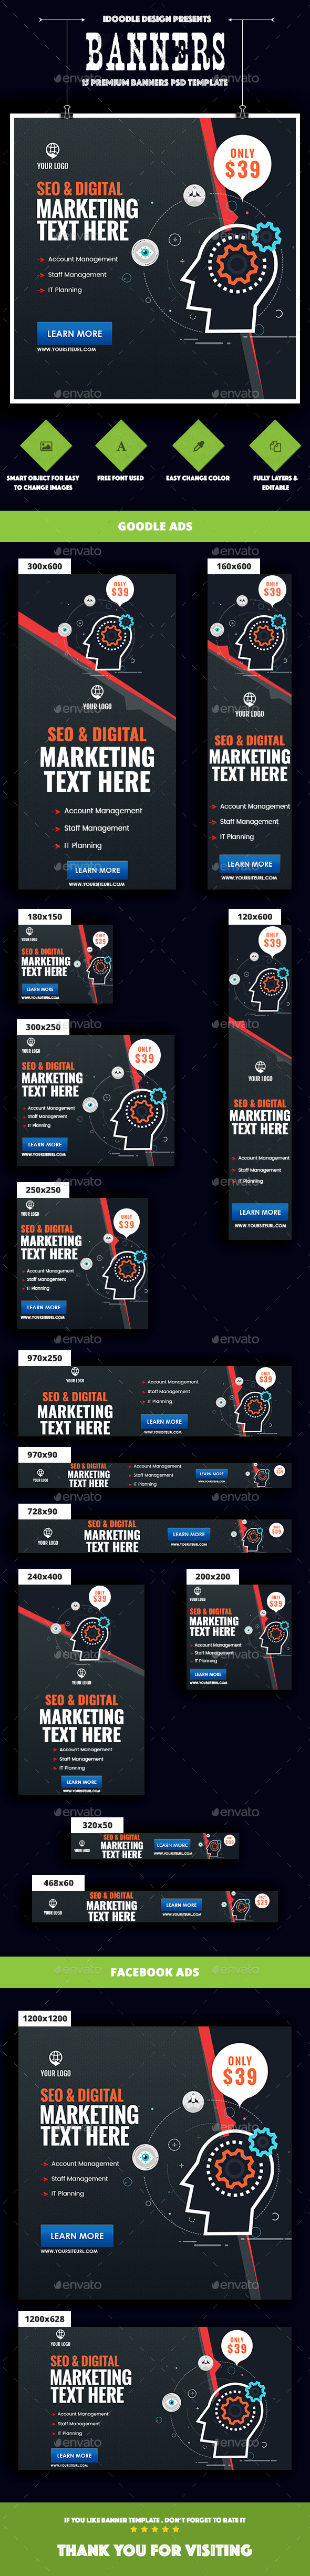 GraphicRiver Seo Social Media Digital Marketing Banners Ad 20345619